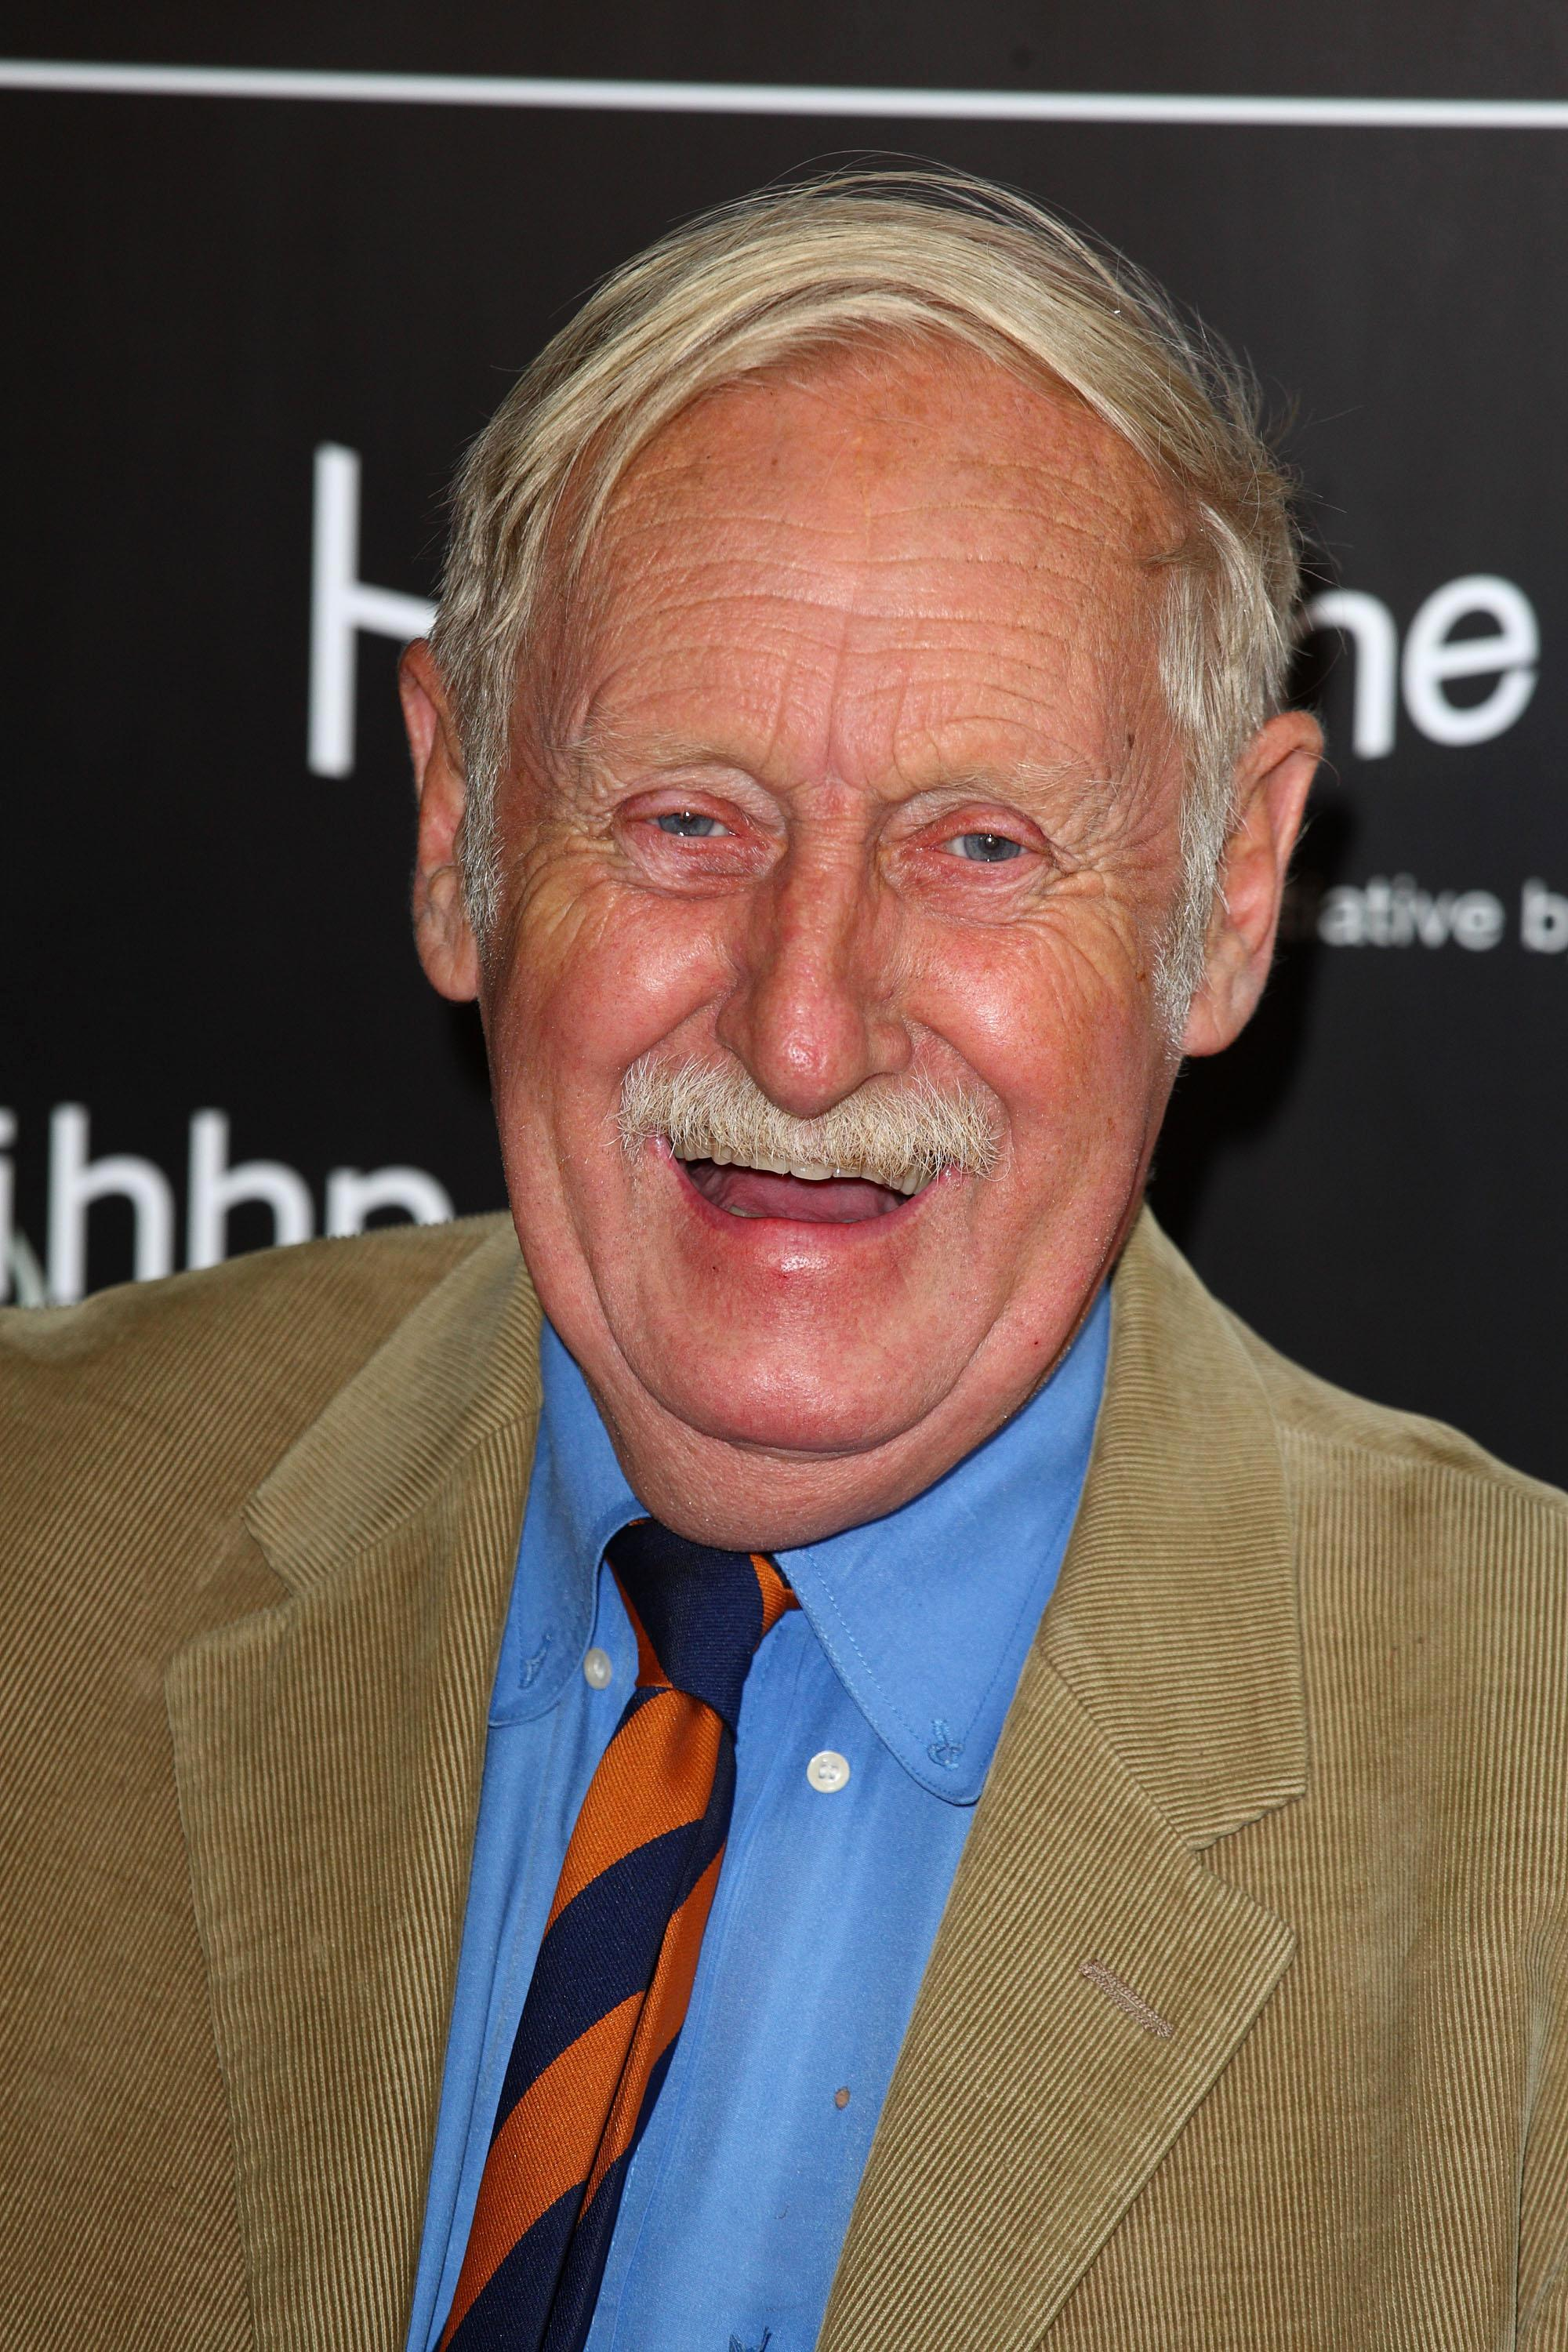 Trevor Baylis dead aged 80 – British inventor of the wind-up radio dies after long battle with illness